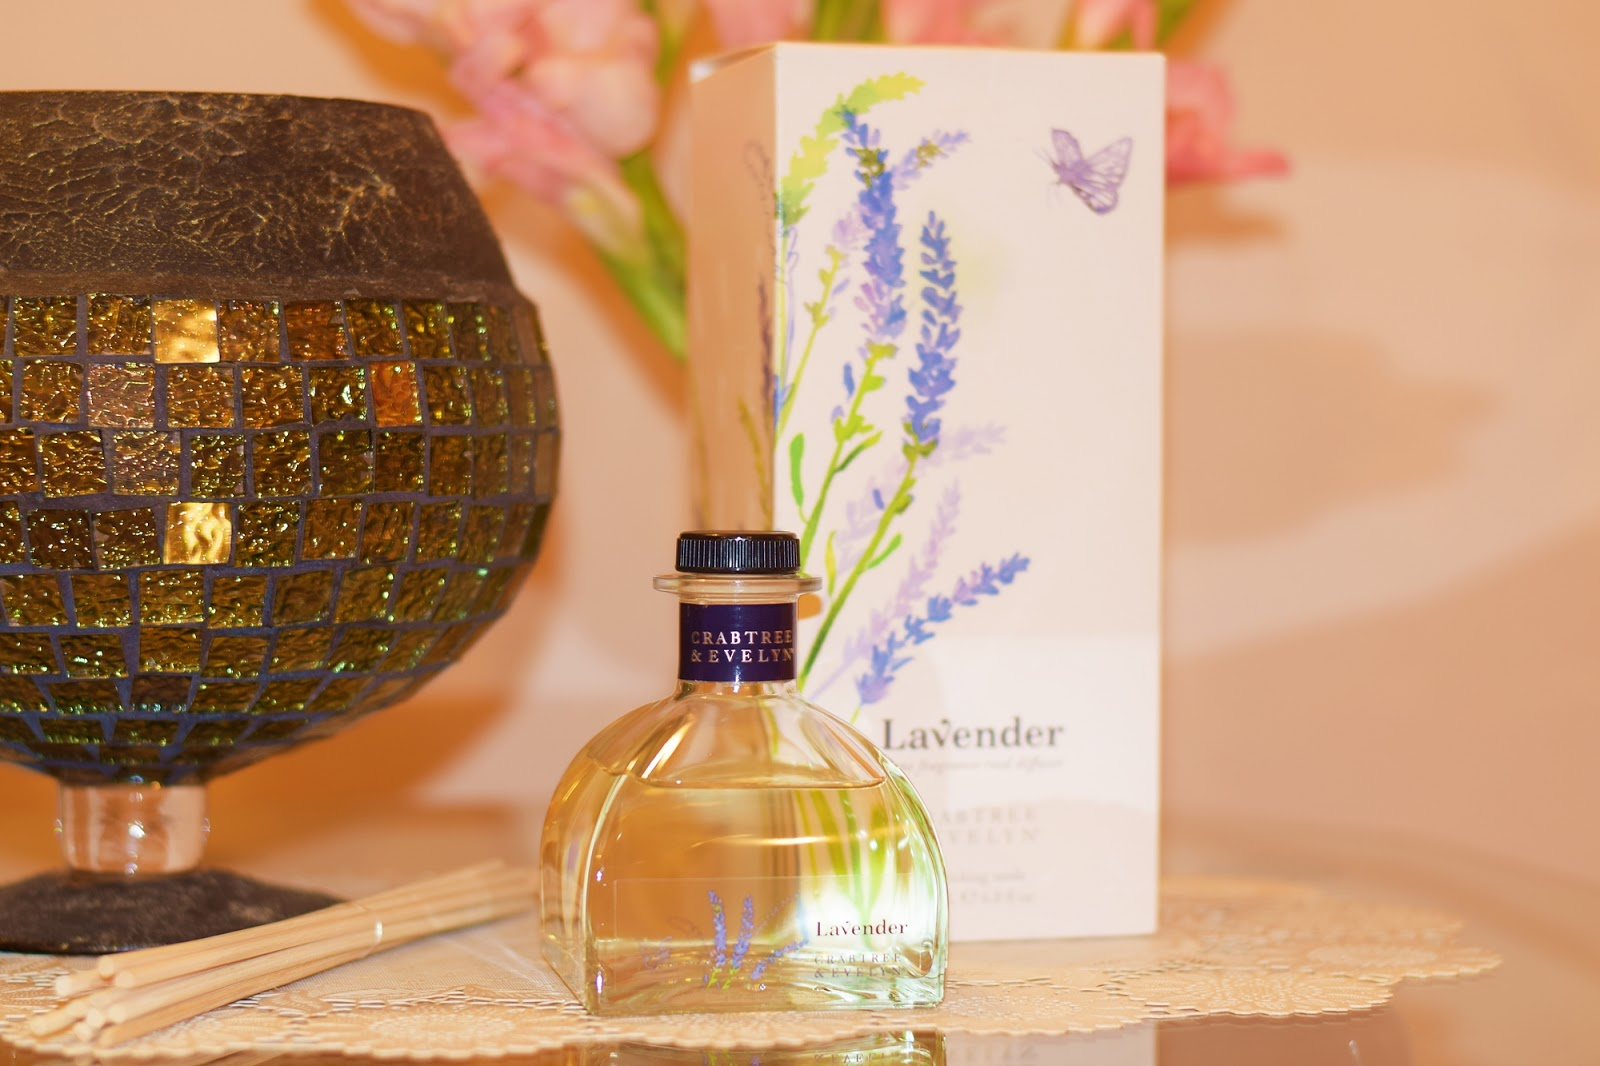 Crabtree & Evelyn Lavender Reed Diffuser